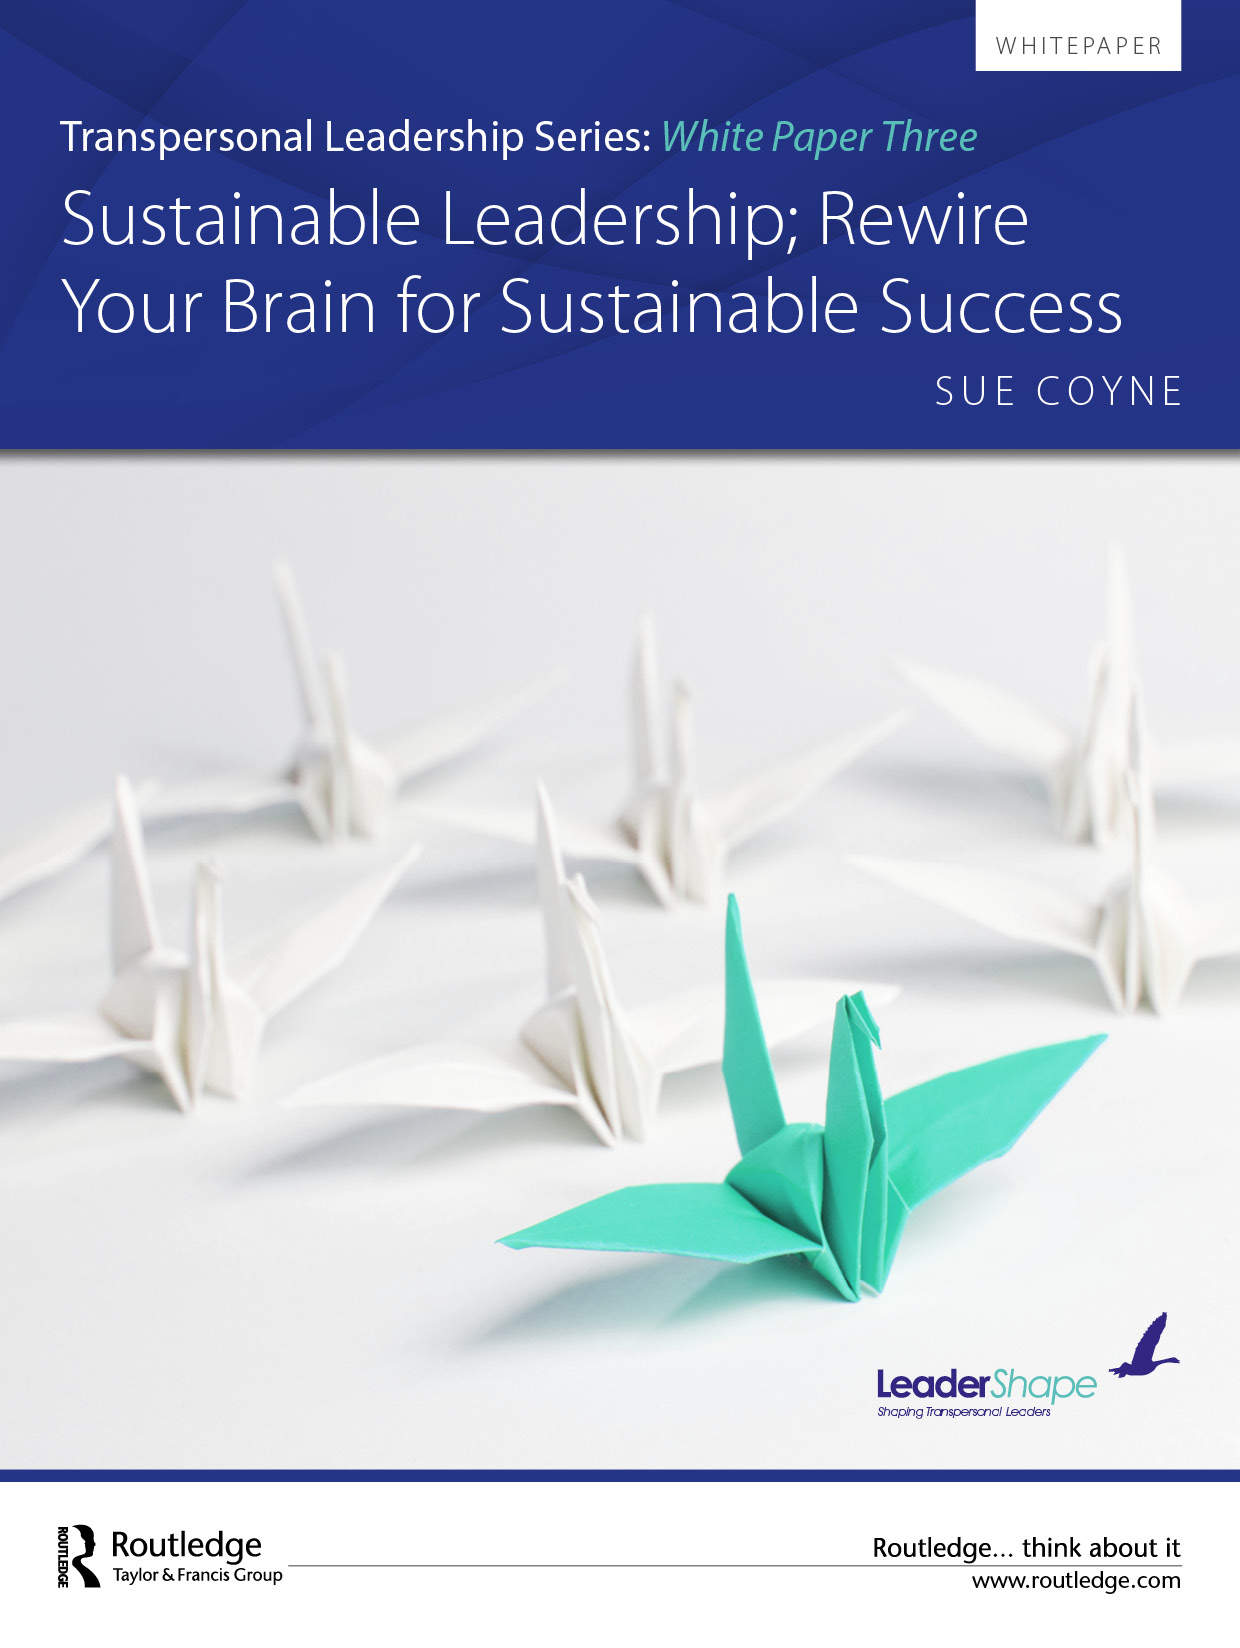 Sustainable Leadership, Rewire Your Brain for Sustainable Success